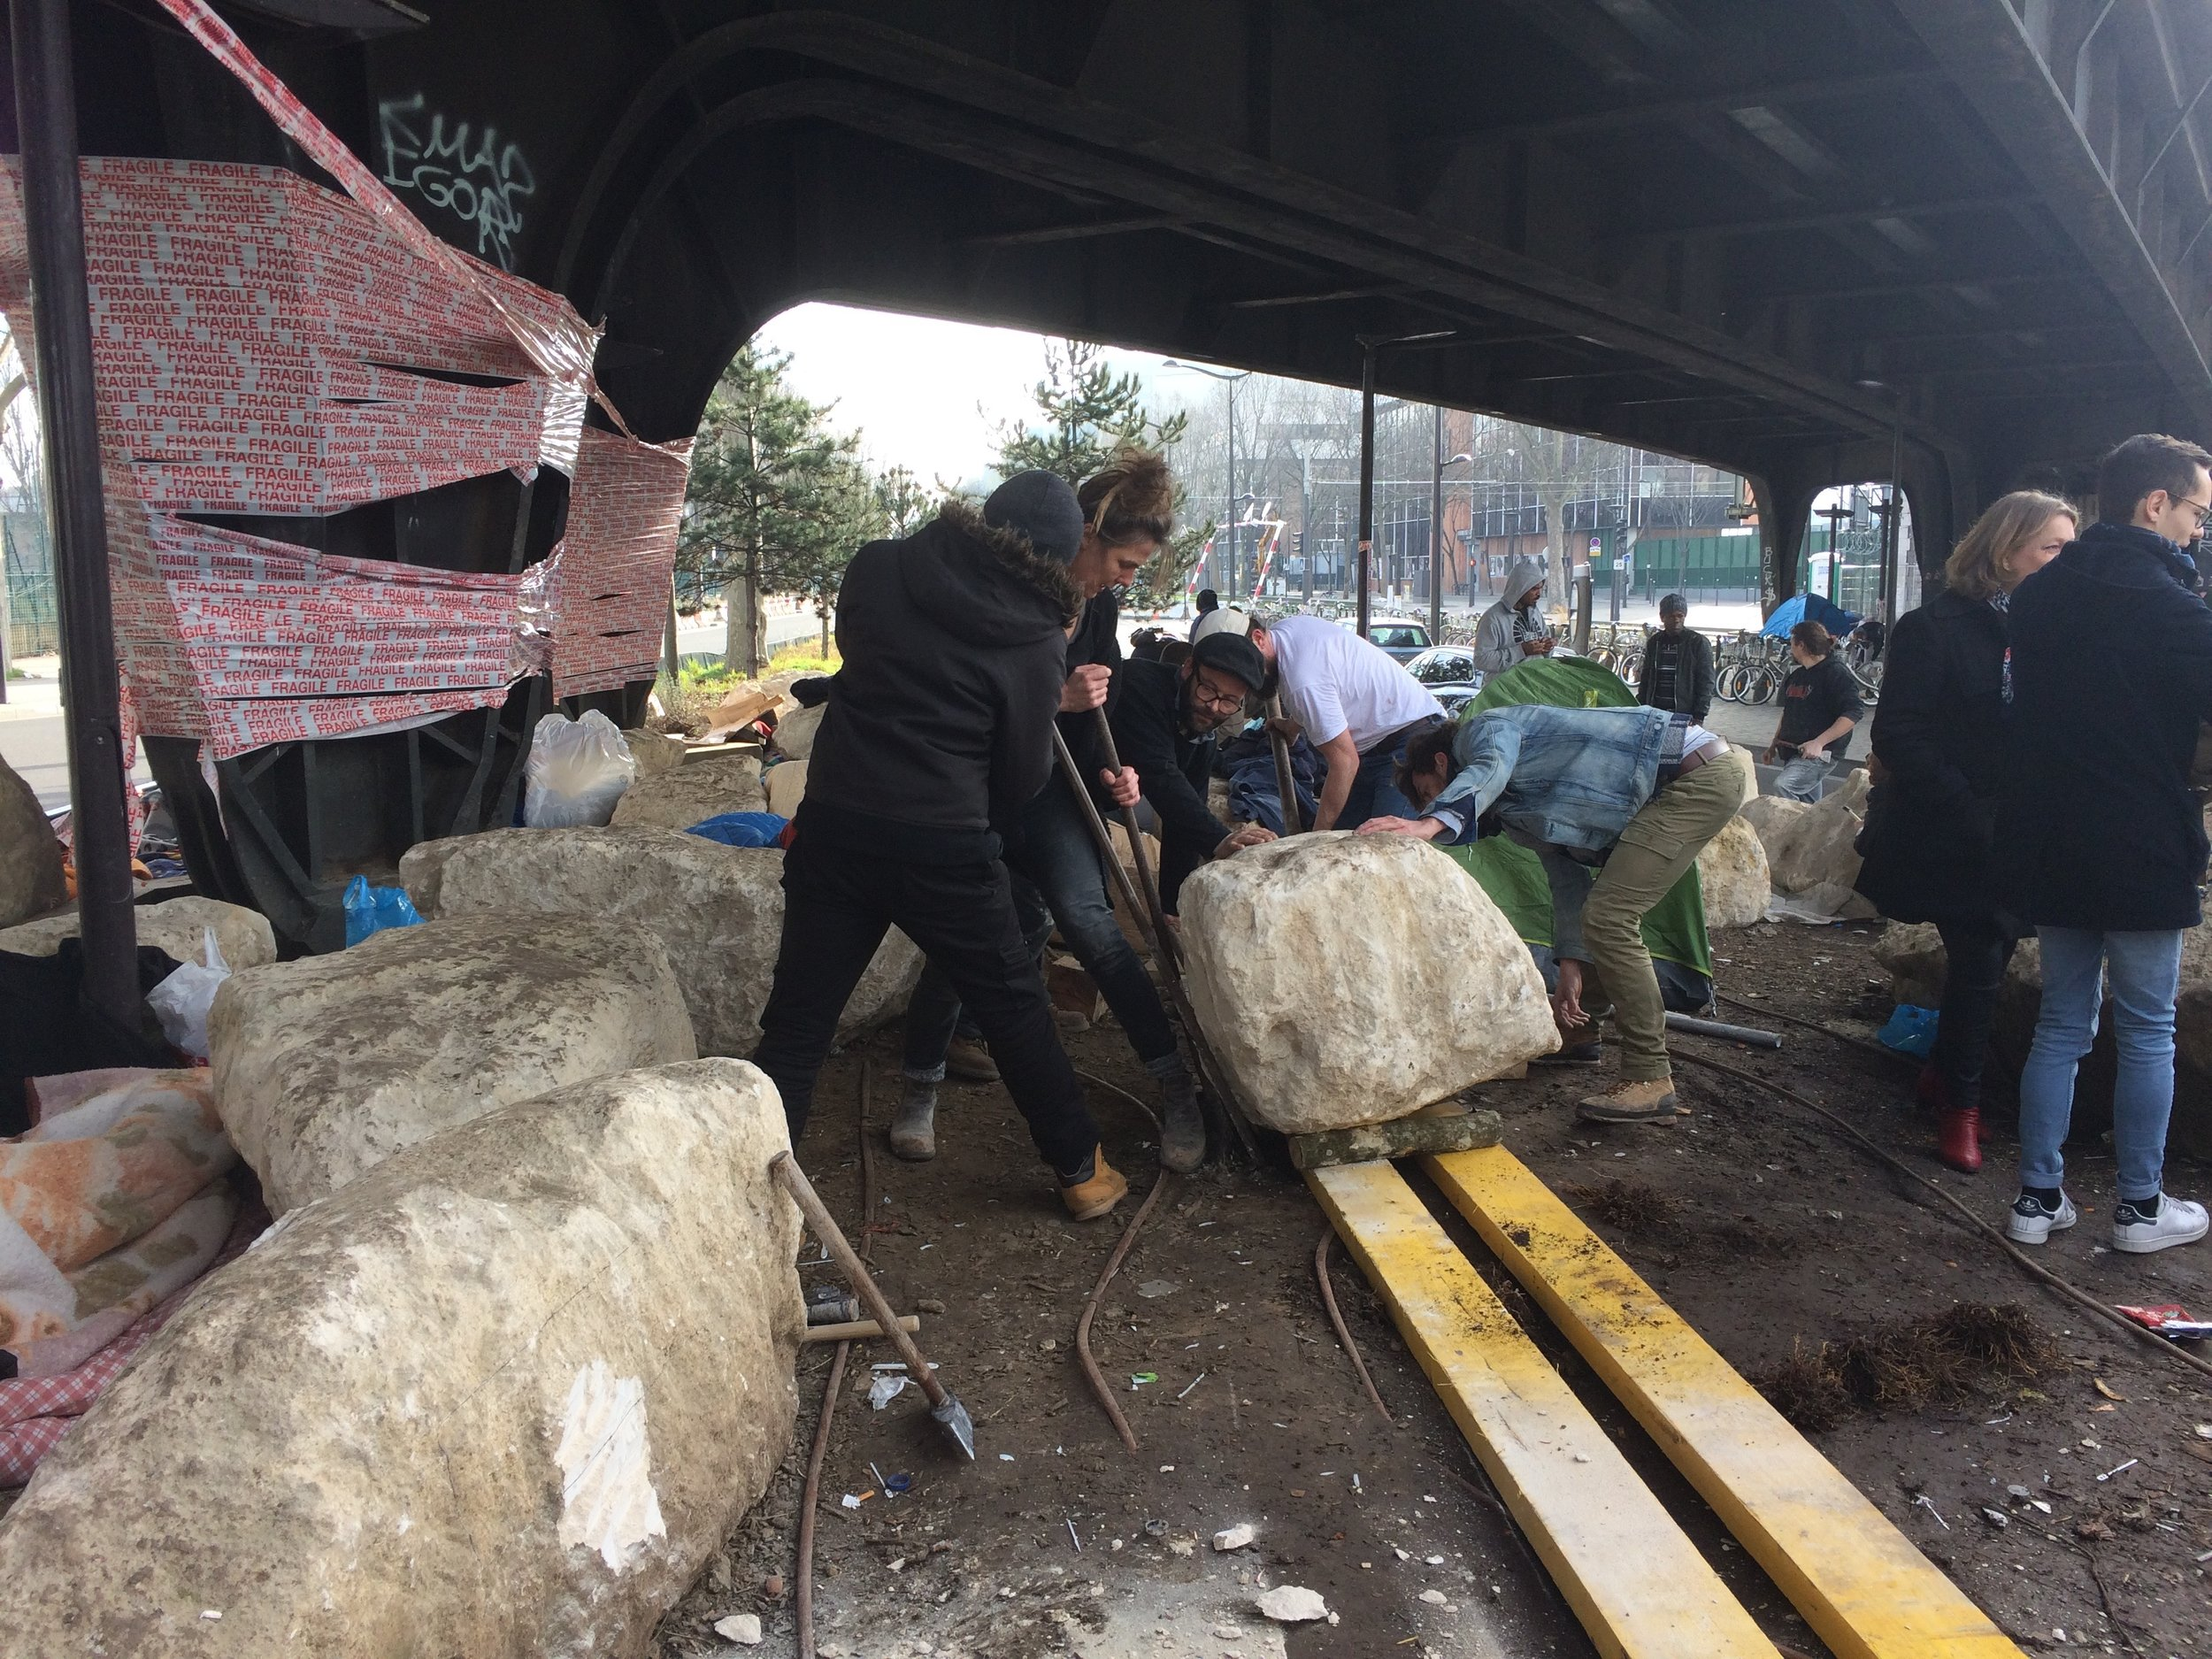 Preparing to move the boulder in order to create space for refugees to sleep.  © Lara Bullens